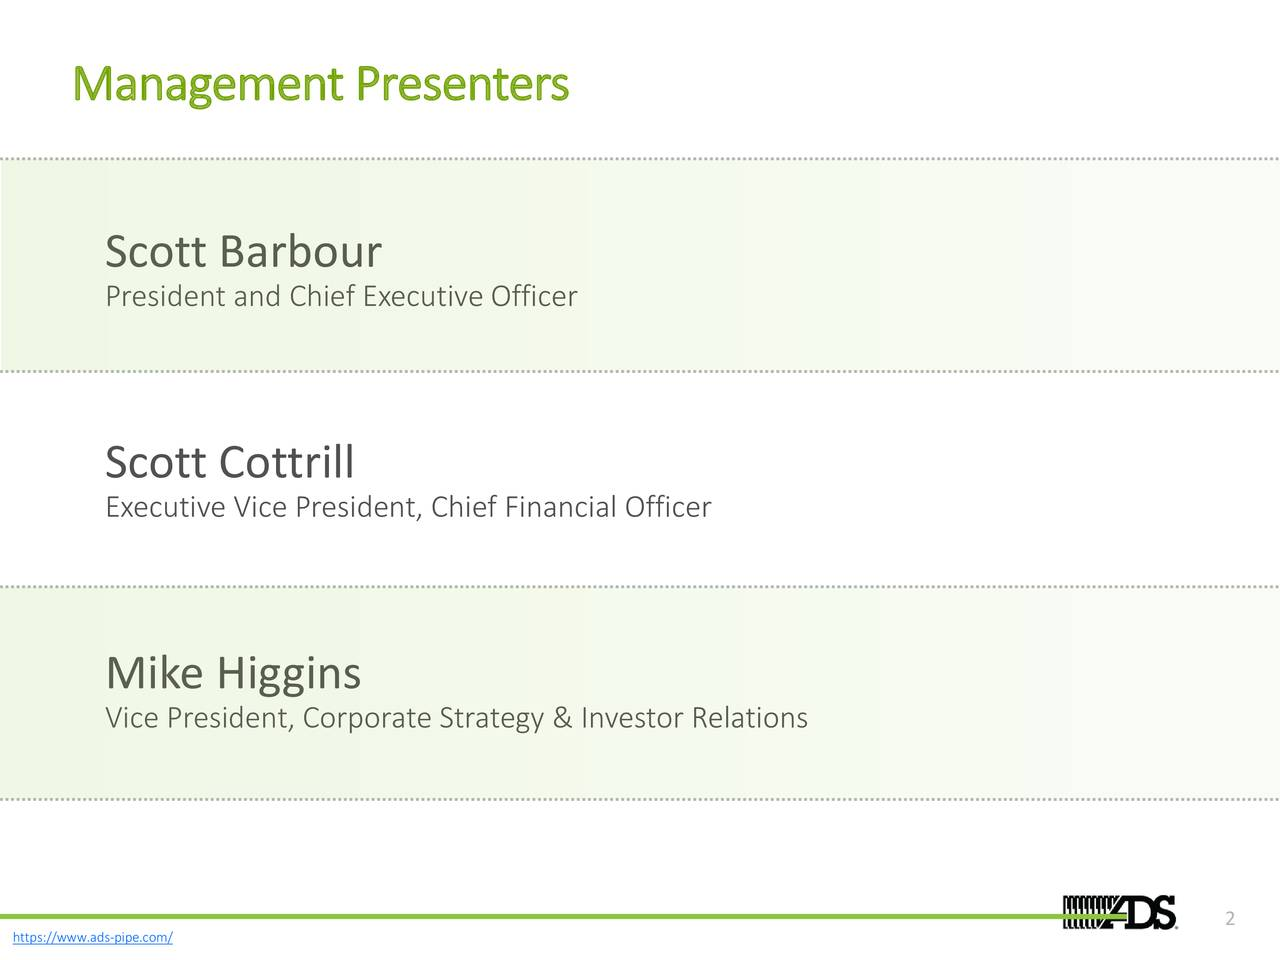 Scott Barbour President and Chief Executive Officer Scott Cottrill Executive Vice President, Chief Financial Officer Mike Higgins Vice President, Corporate Strategy & Investor Relations 2